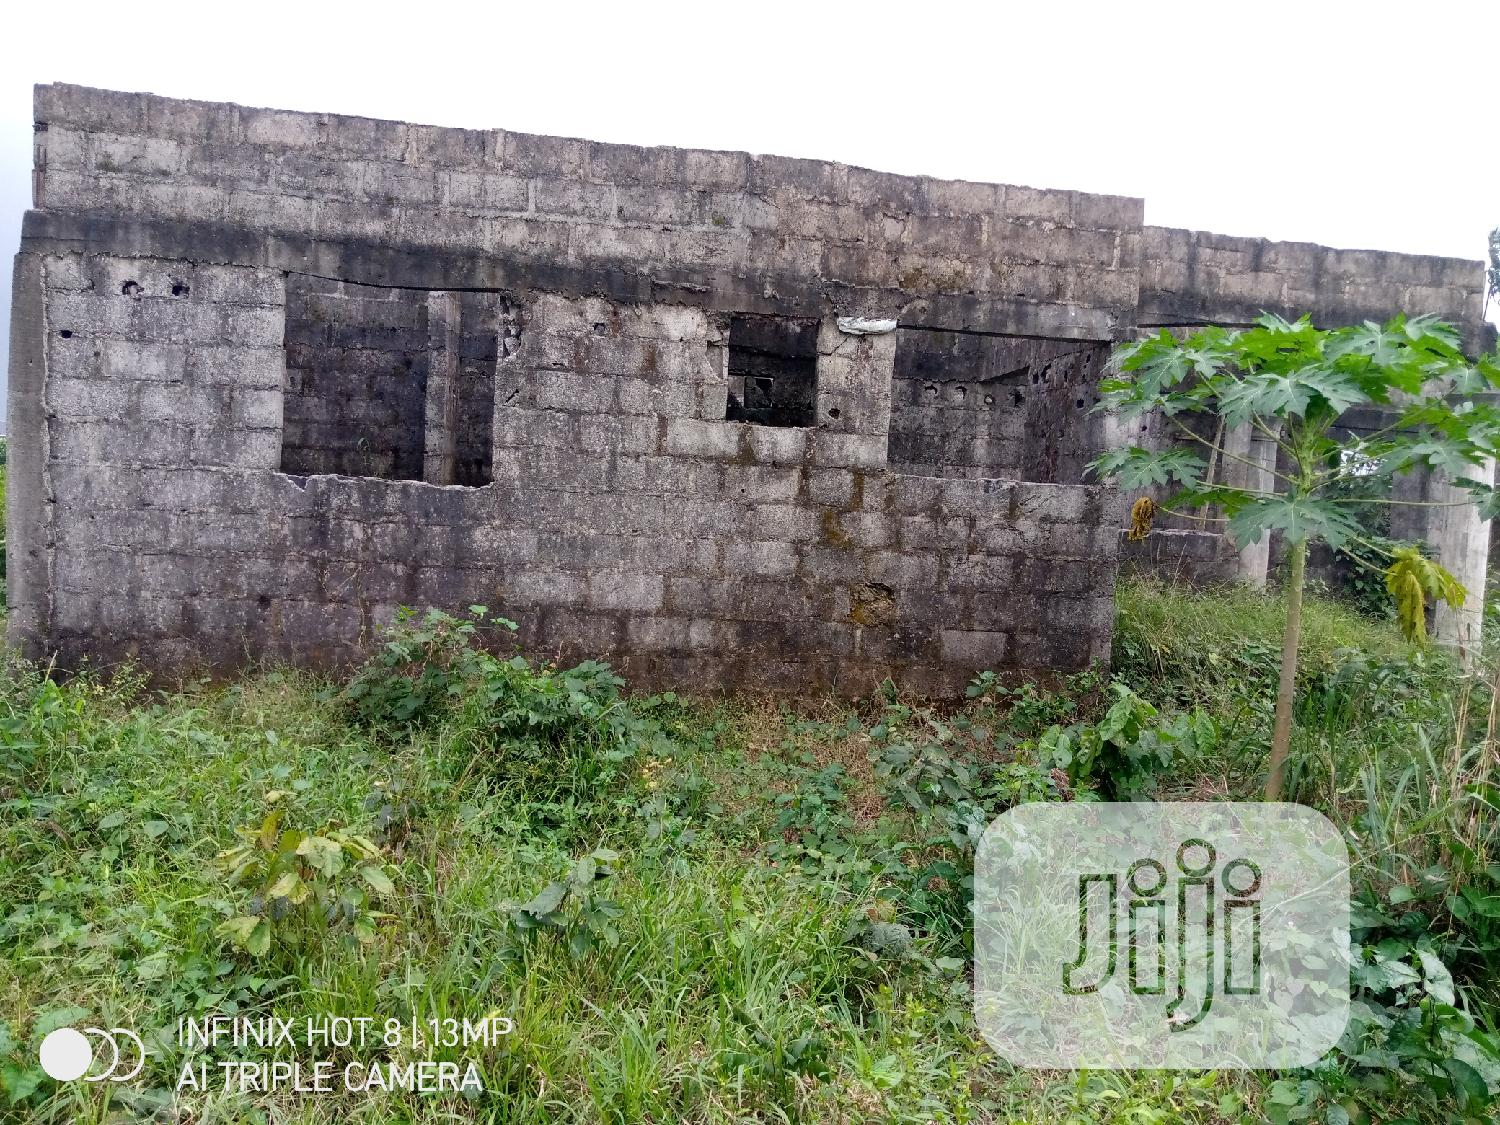 An Uncompleted Building Up for Sale.